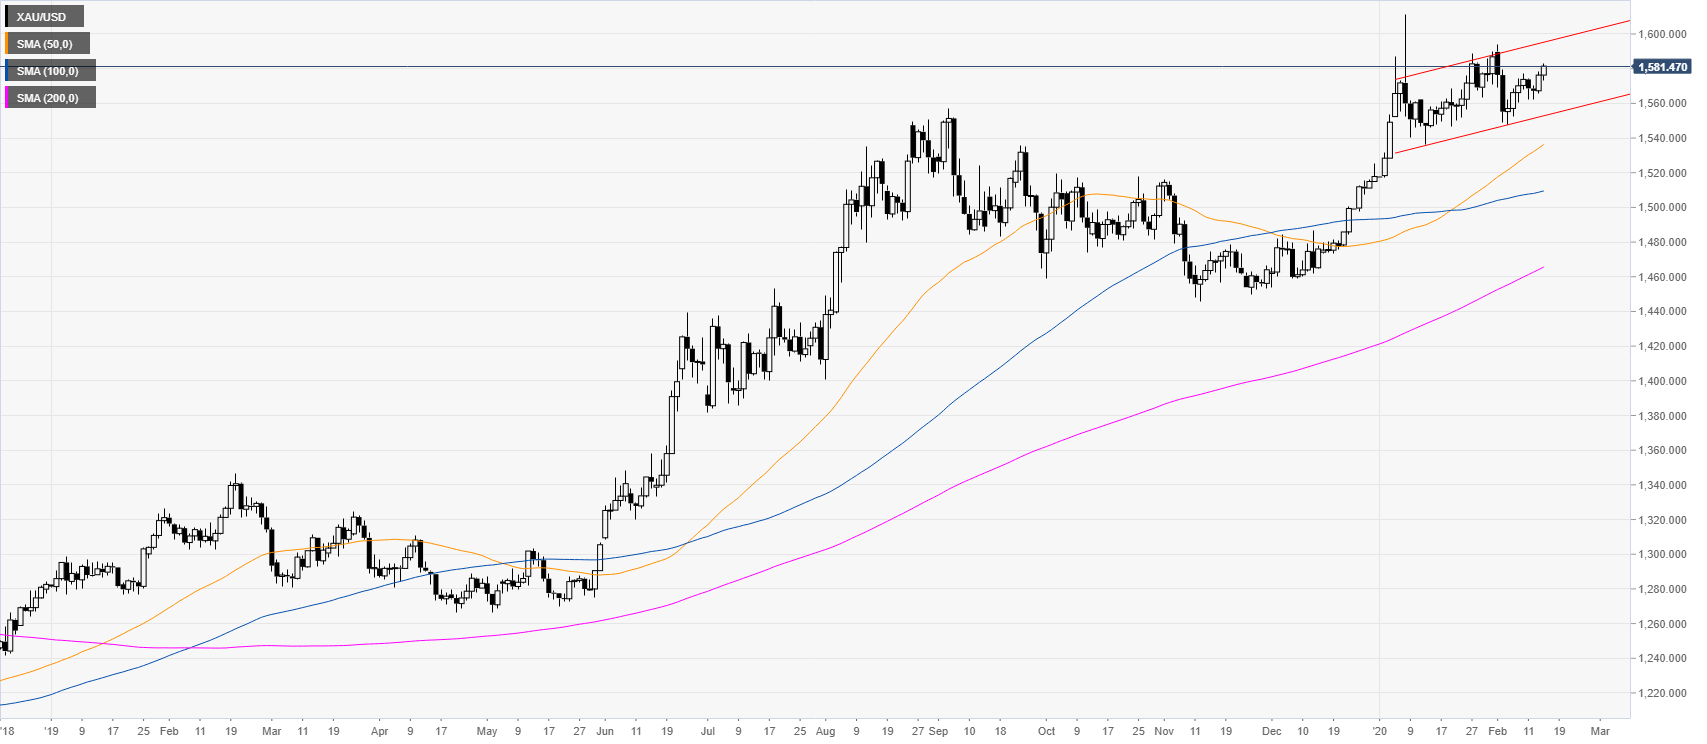 https://editorial.fxstreet.com/miscelaneous/daily-637172907406049687.png